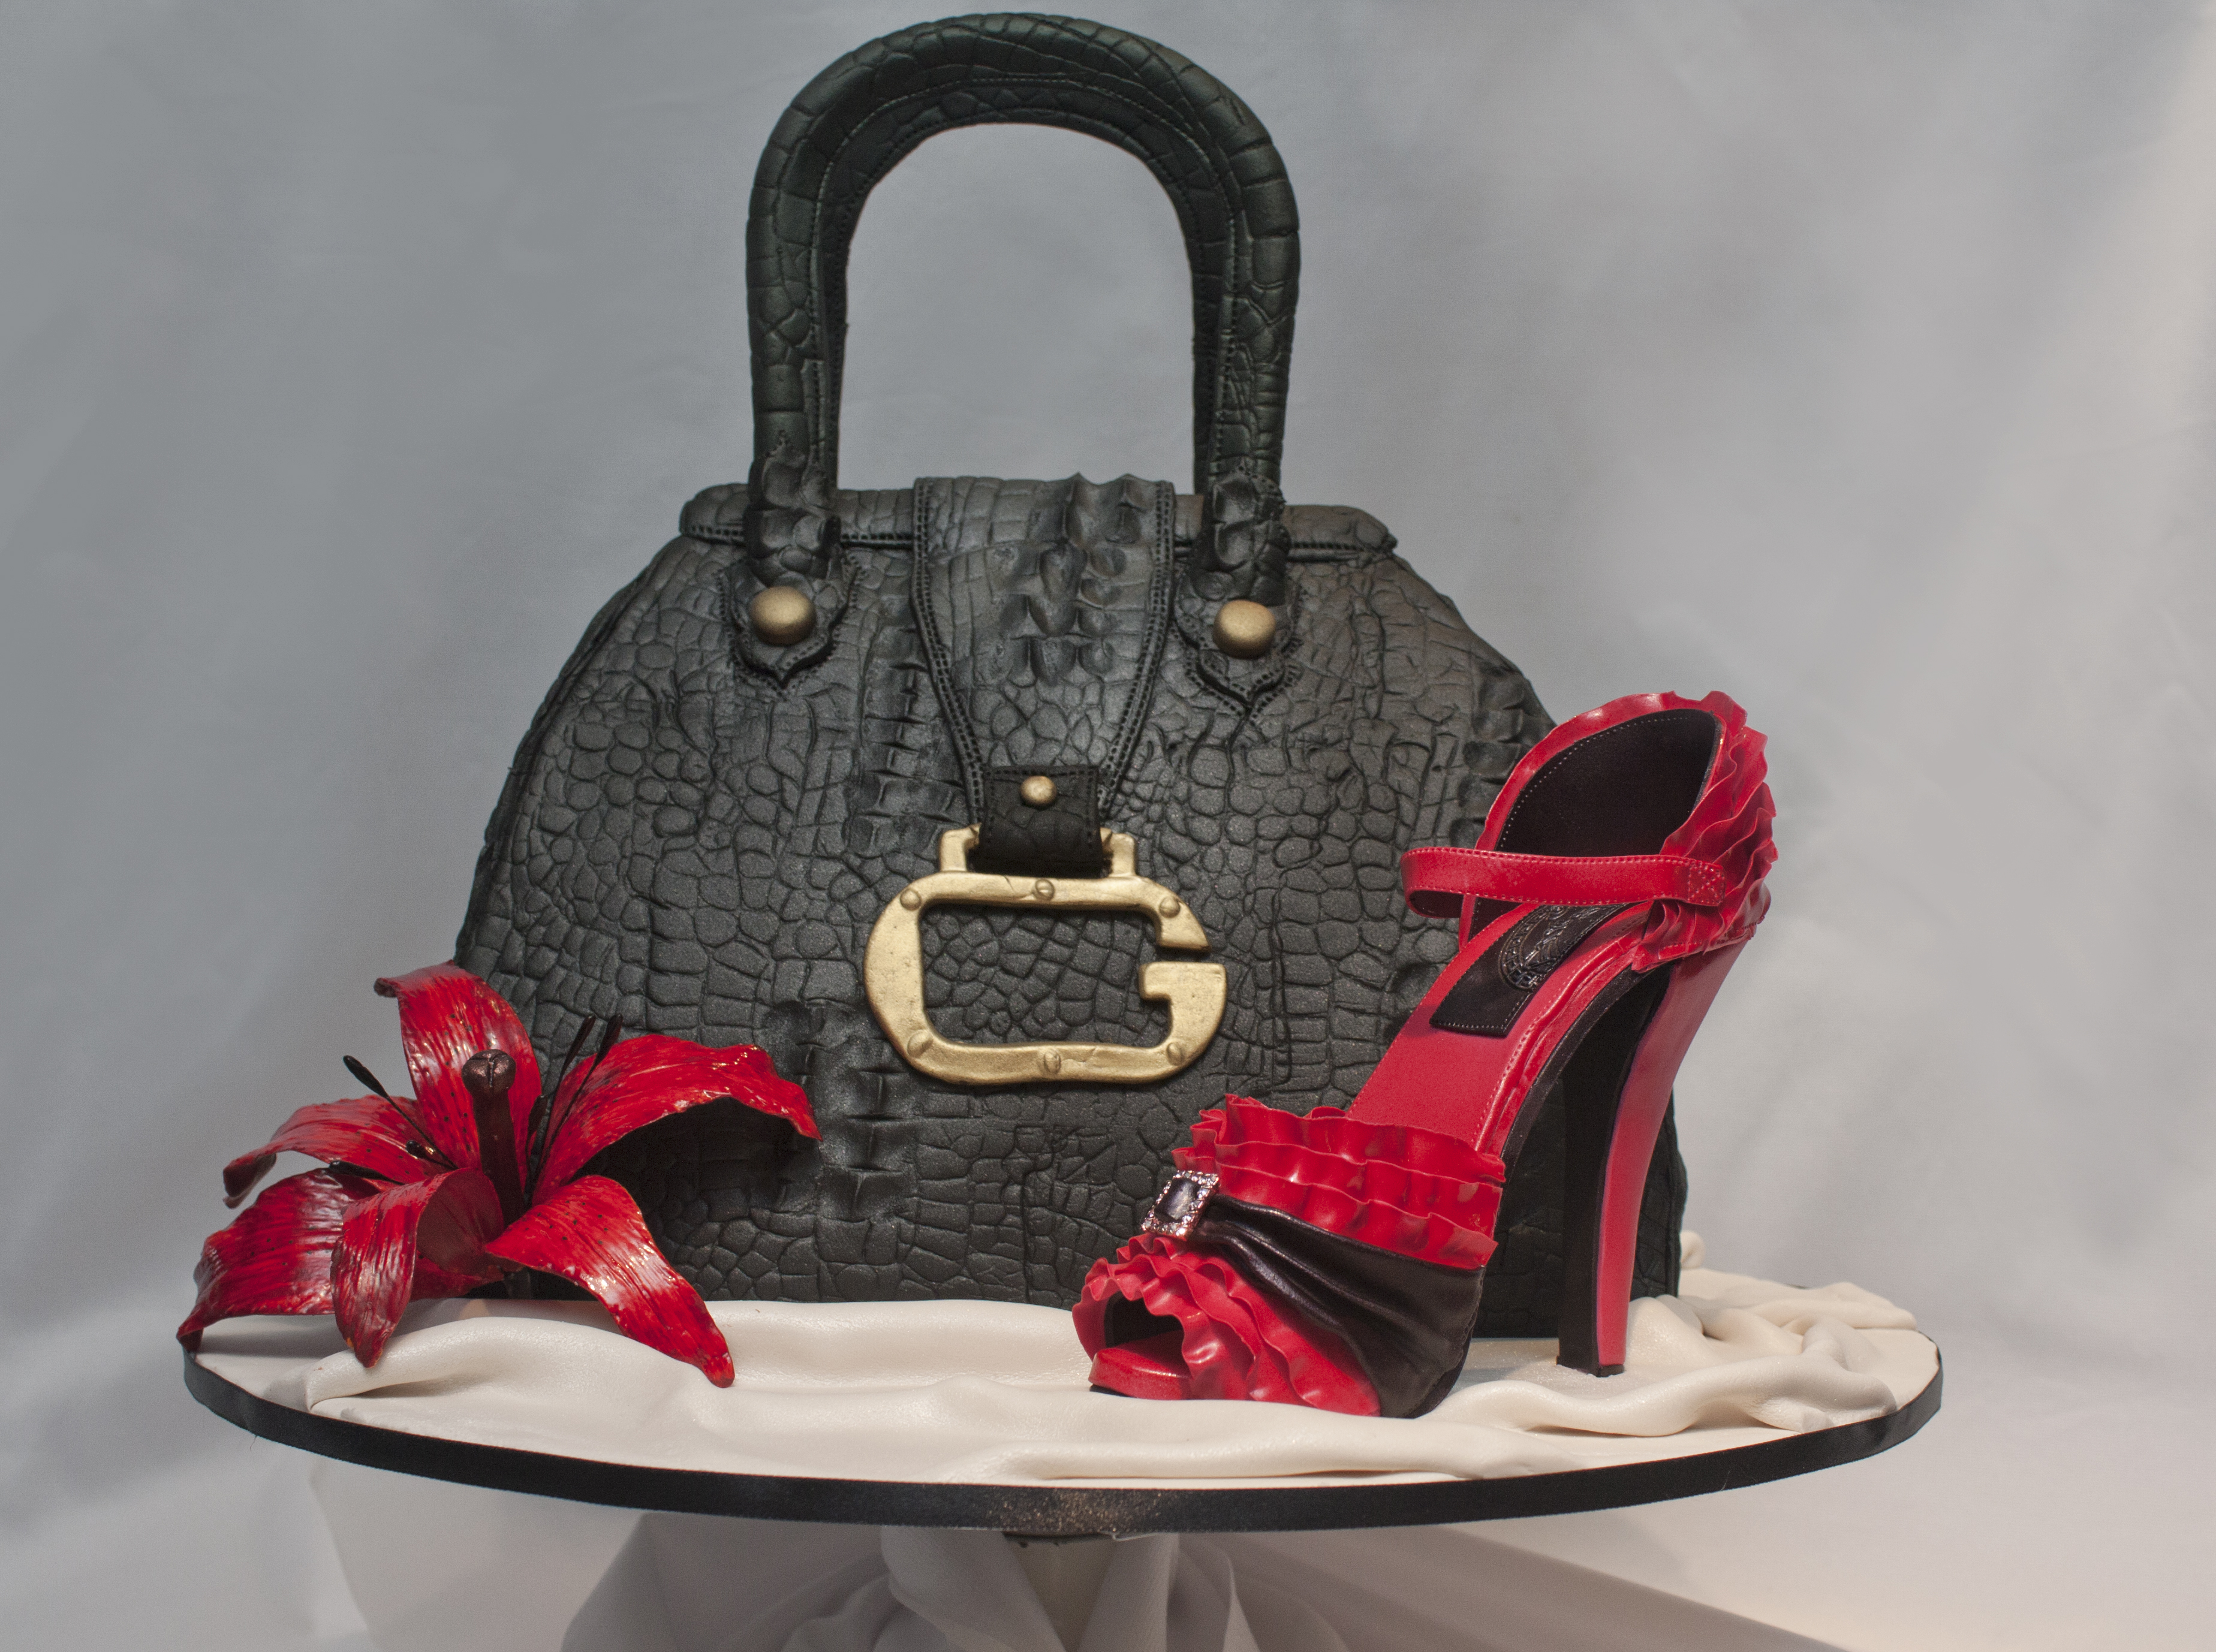 Handbag and stiletto by Jo Orr